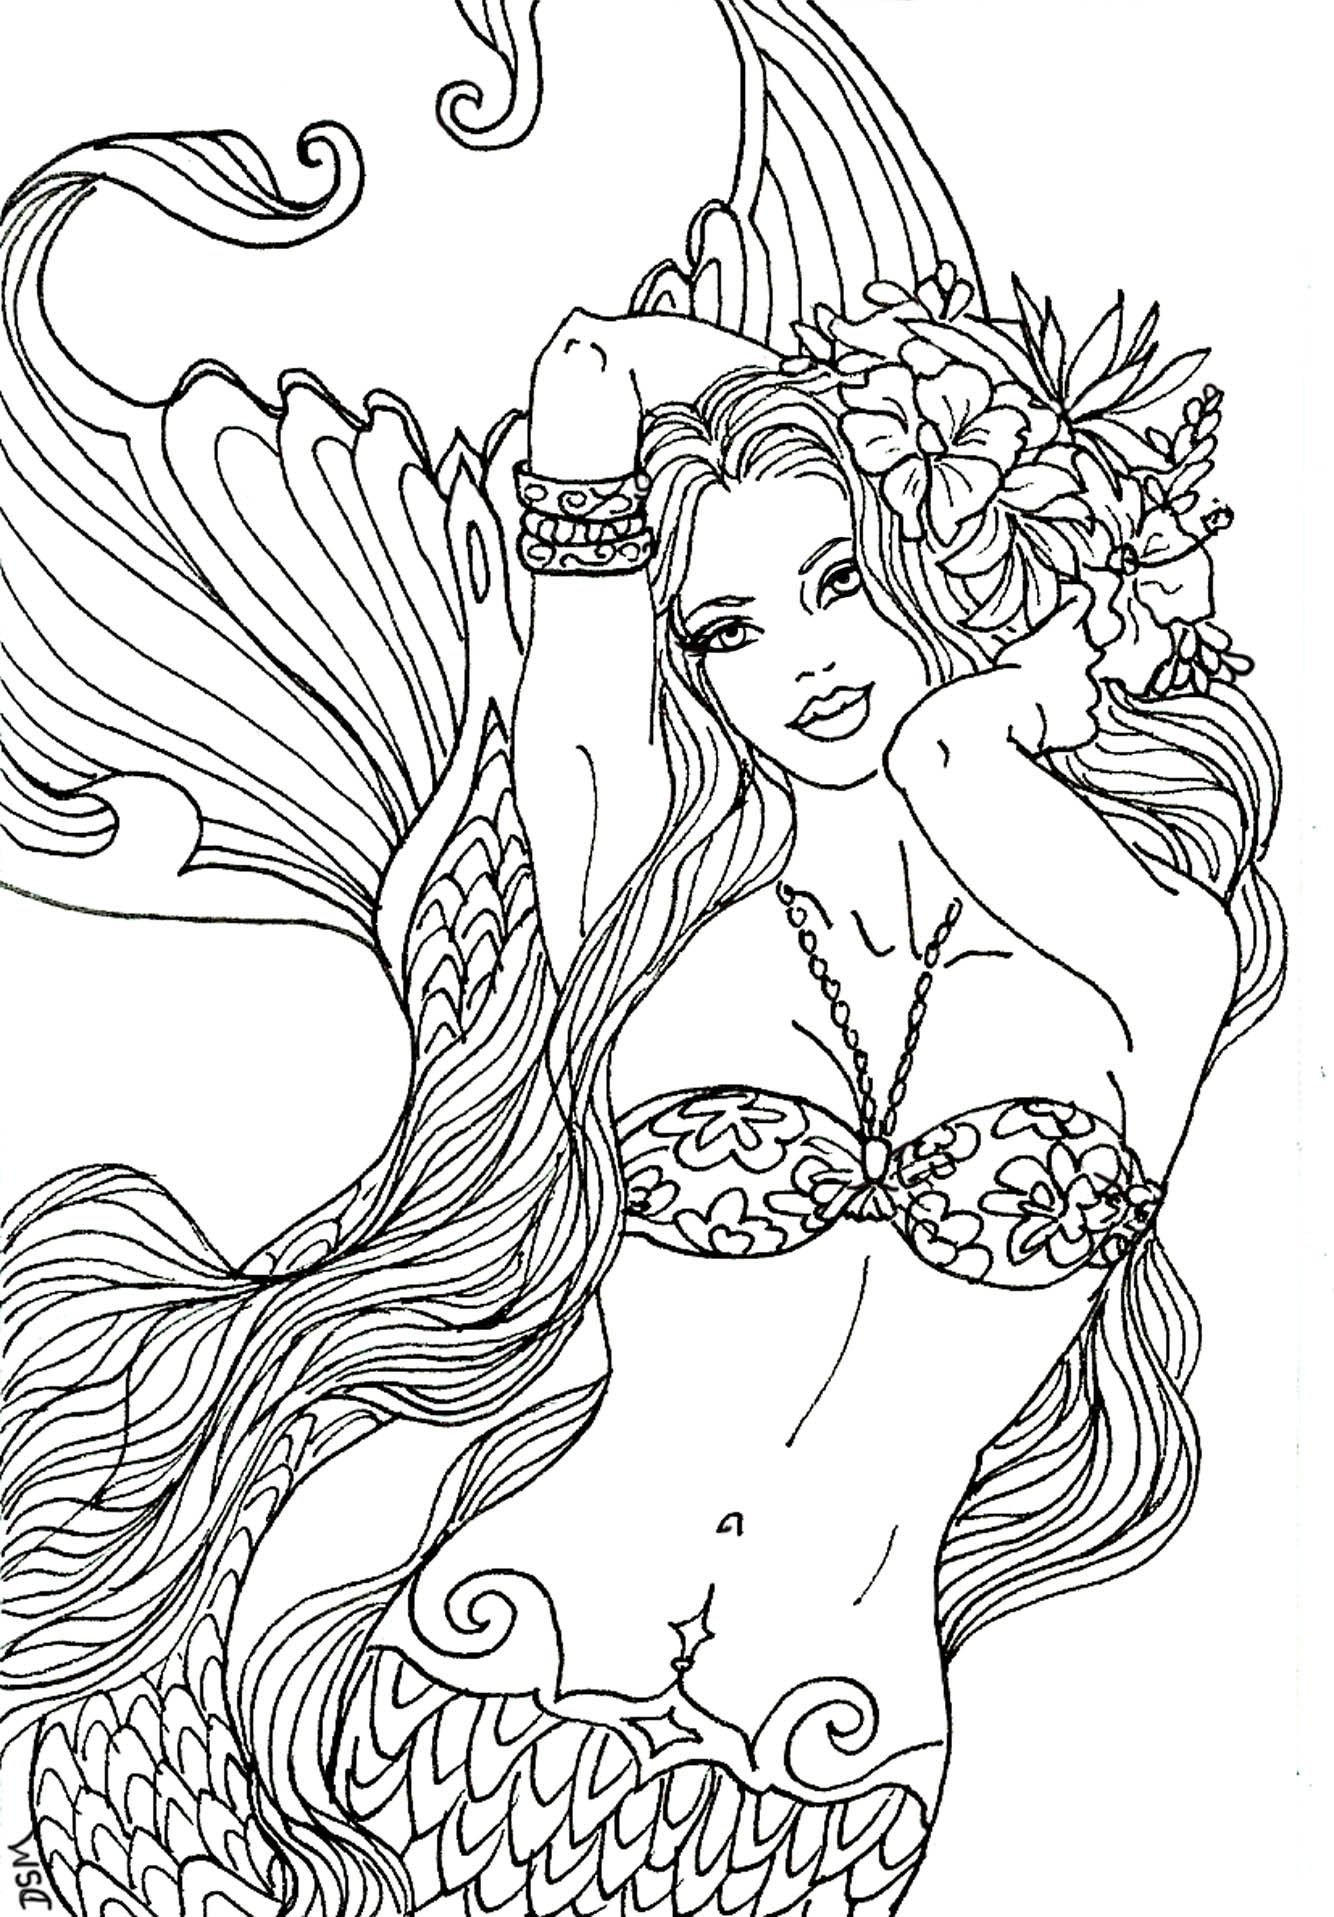 flower mermaid by artist diane s martin mermaid fantasy myth